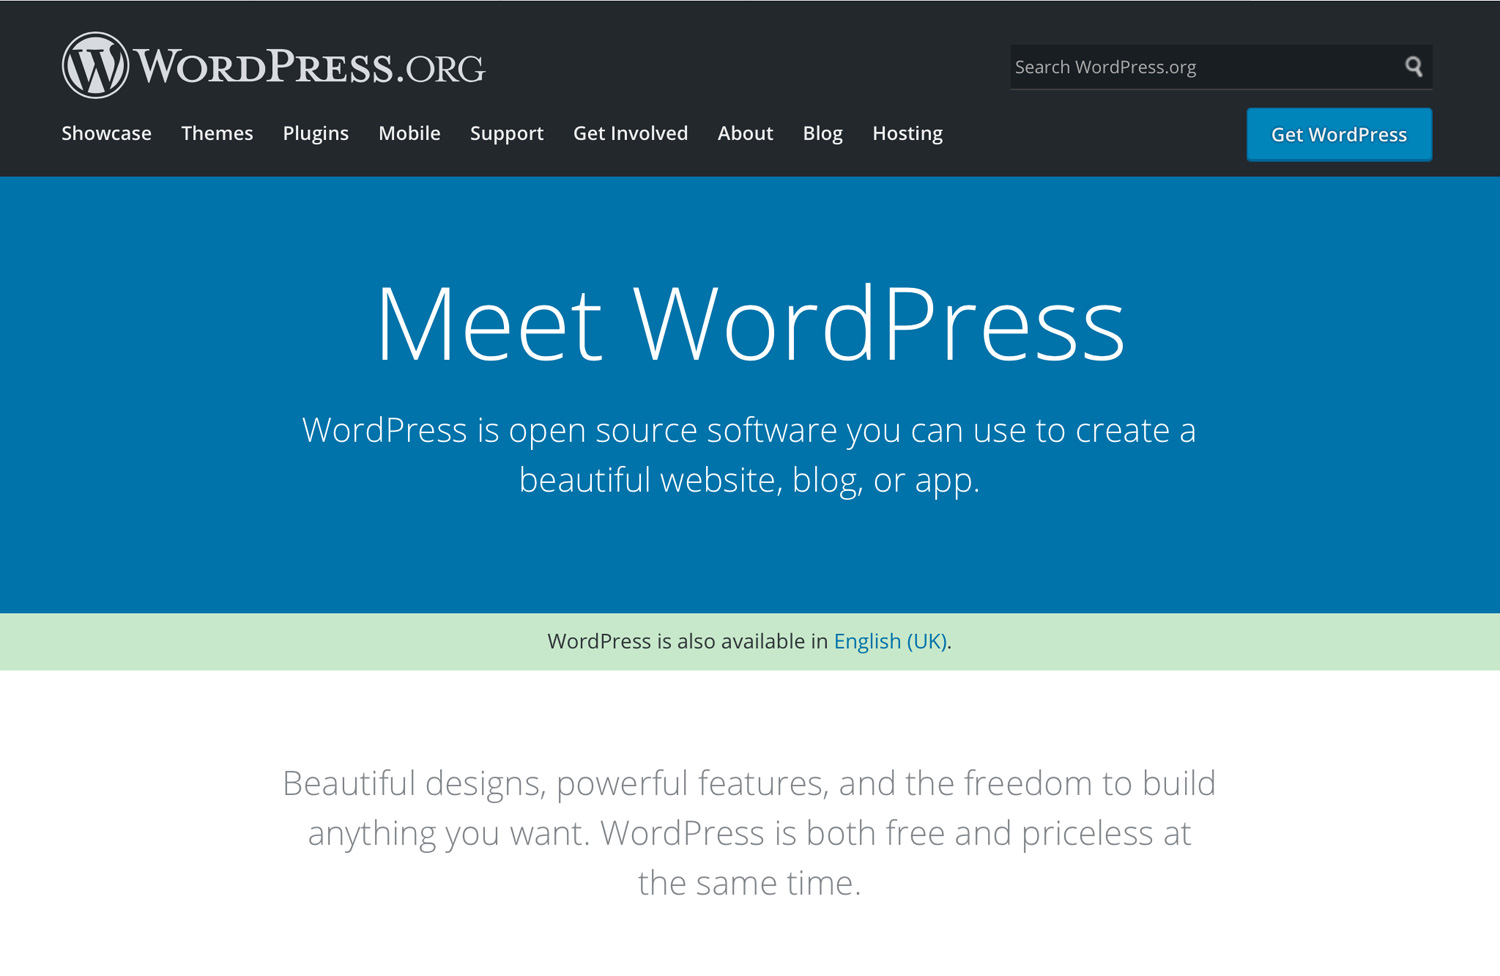 Wordpress dot org - How to Find the Right Website Platform that Works For You